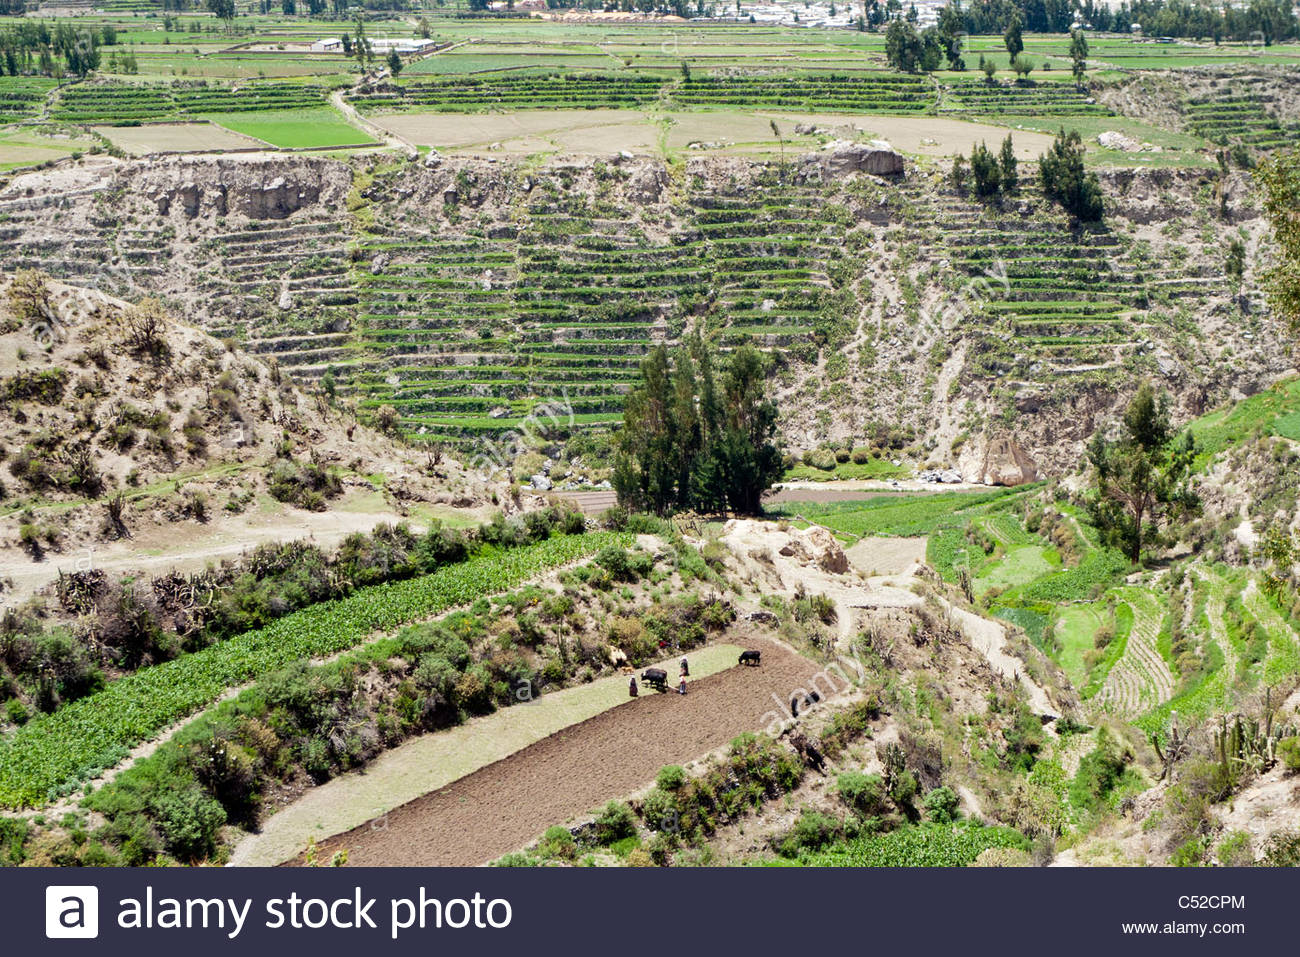 A farmer with plowing a field for planting with cows, near Coporaque, Colca Canyon, Peru. - Stock Image